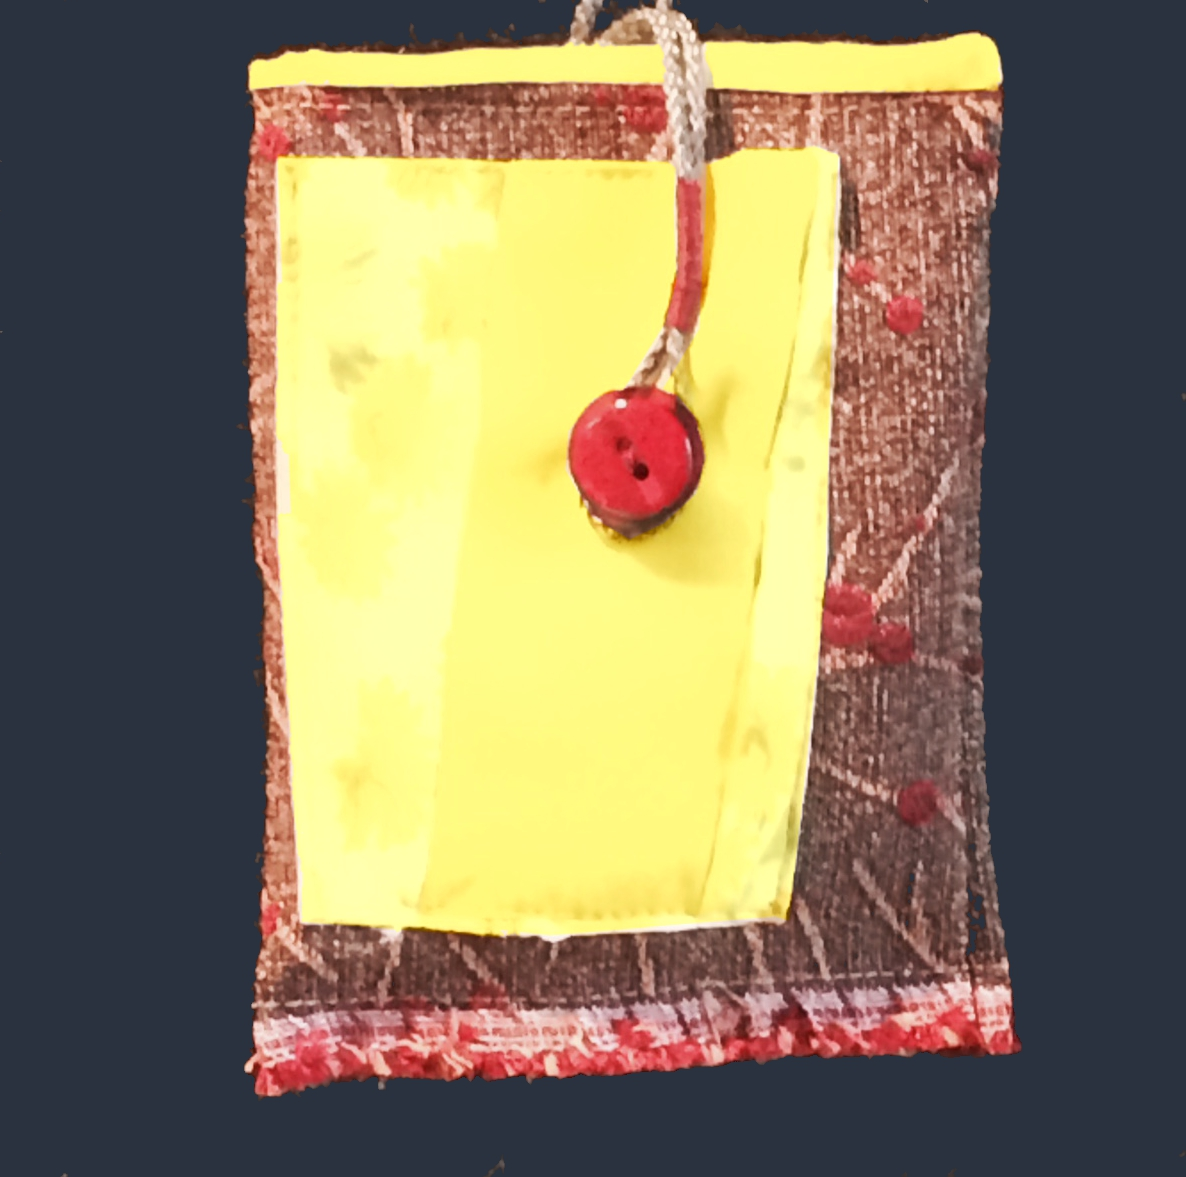 Dual red button closure and bright yellow lining compliment this branch and cherry fabric.